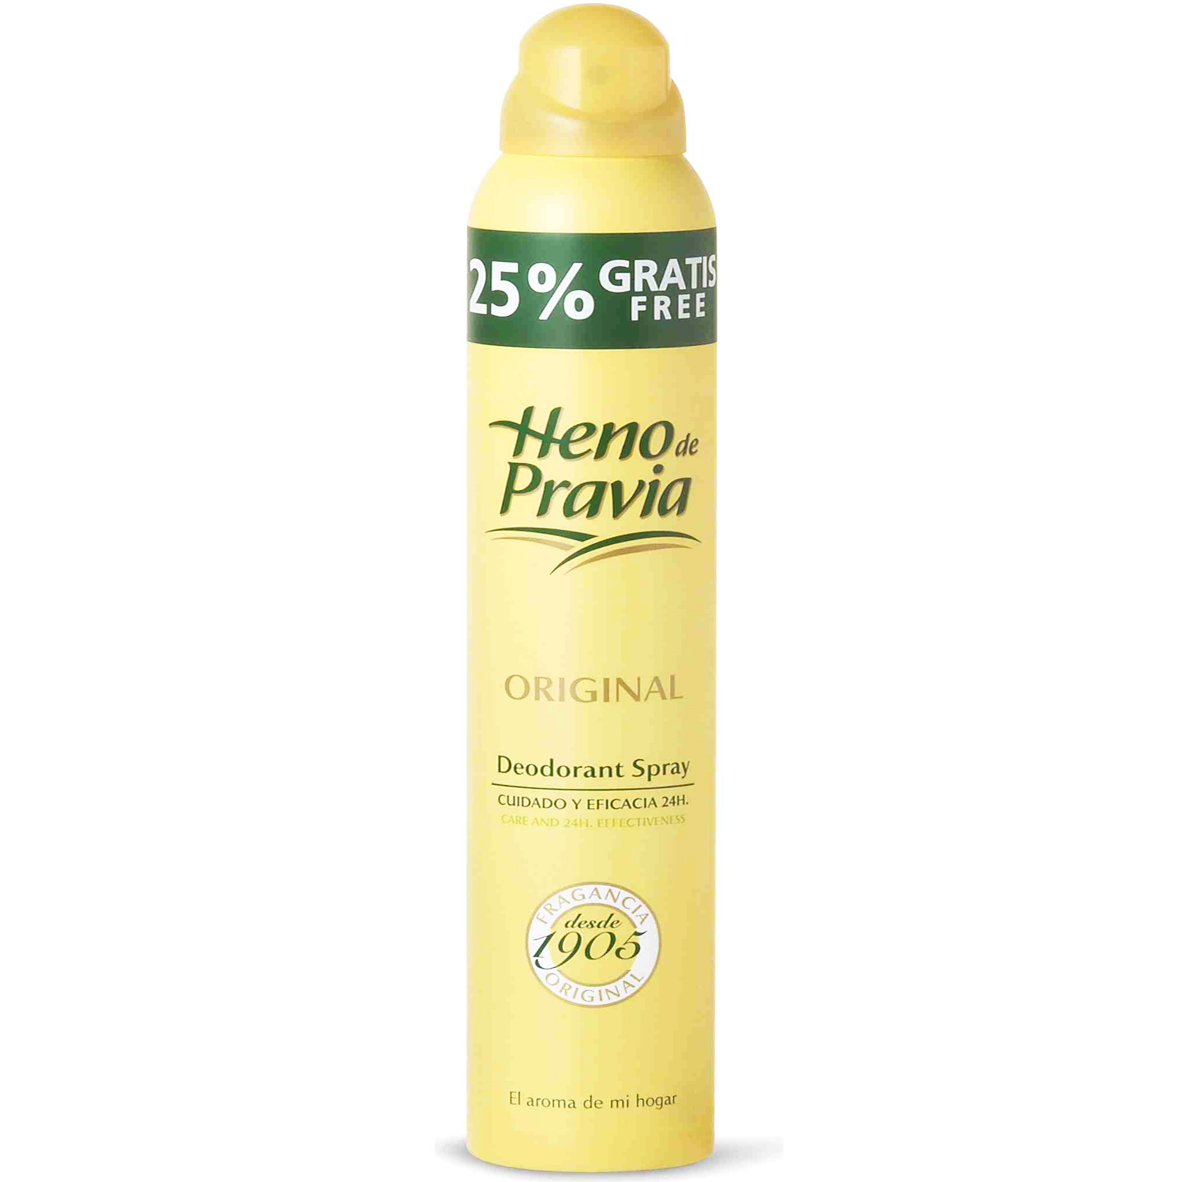 HENO DE PRAVIA DEODORANT SPRAY 250ml